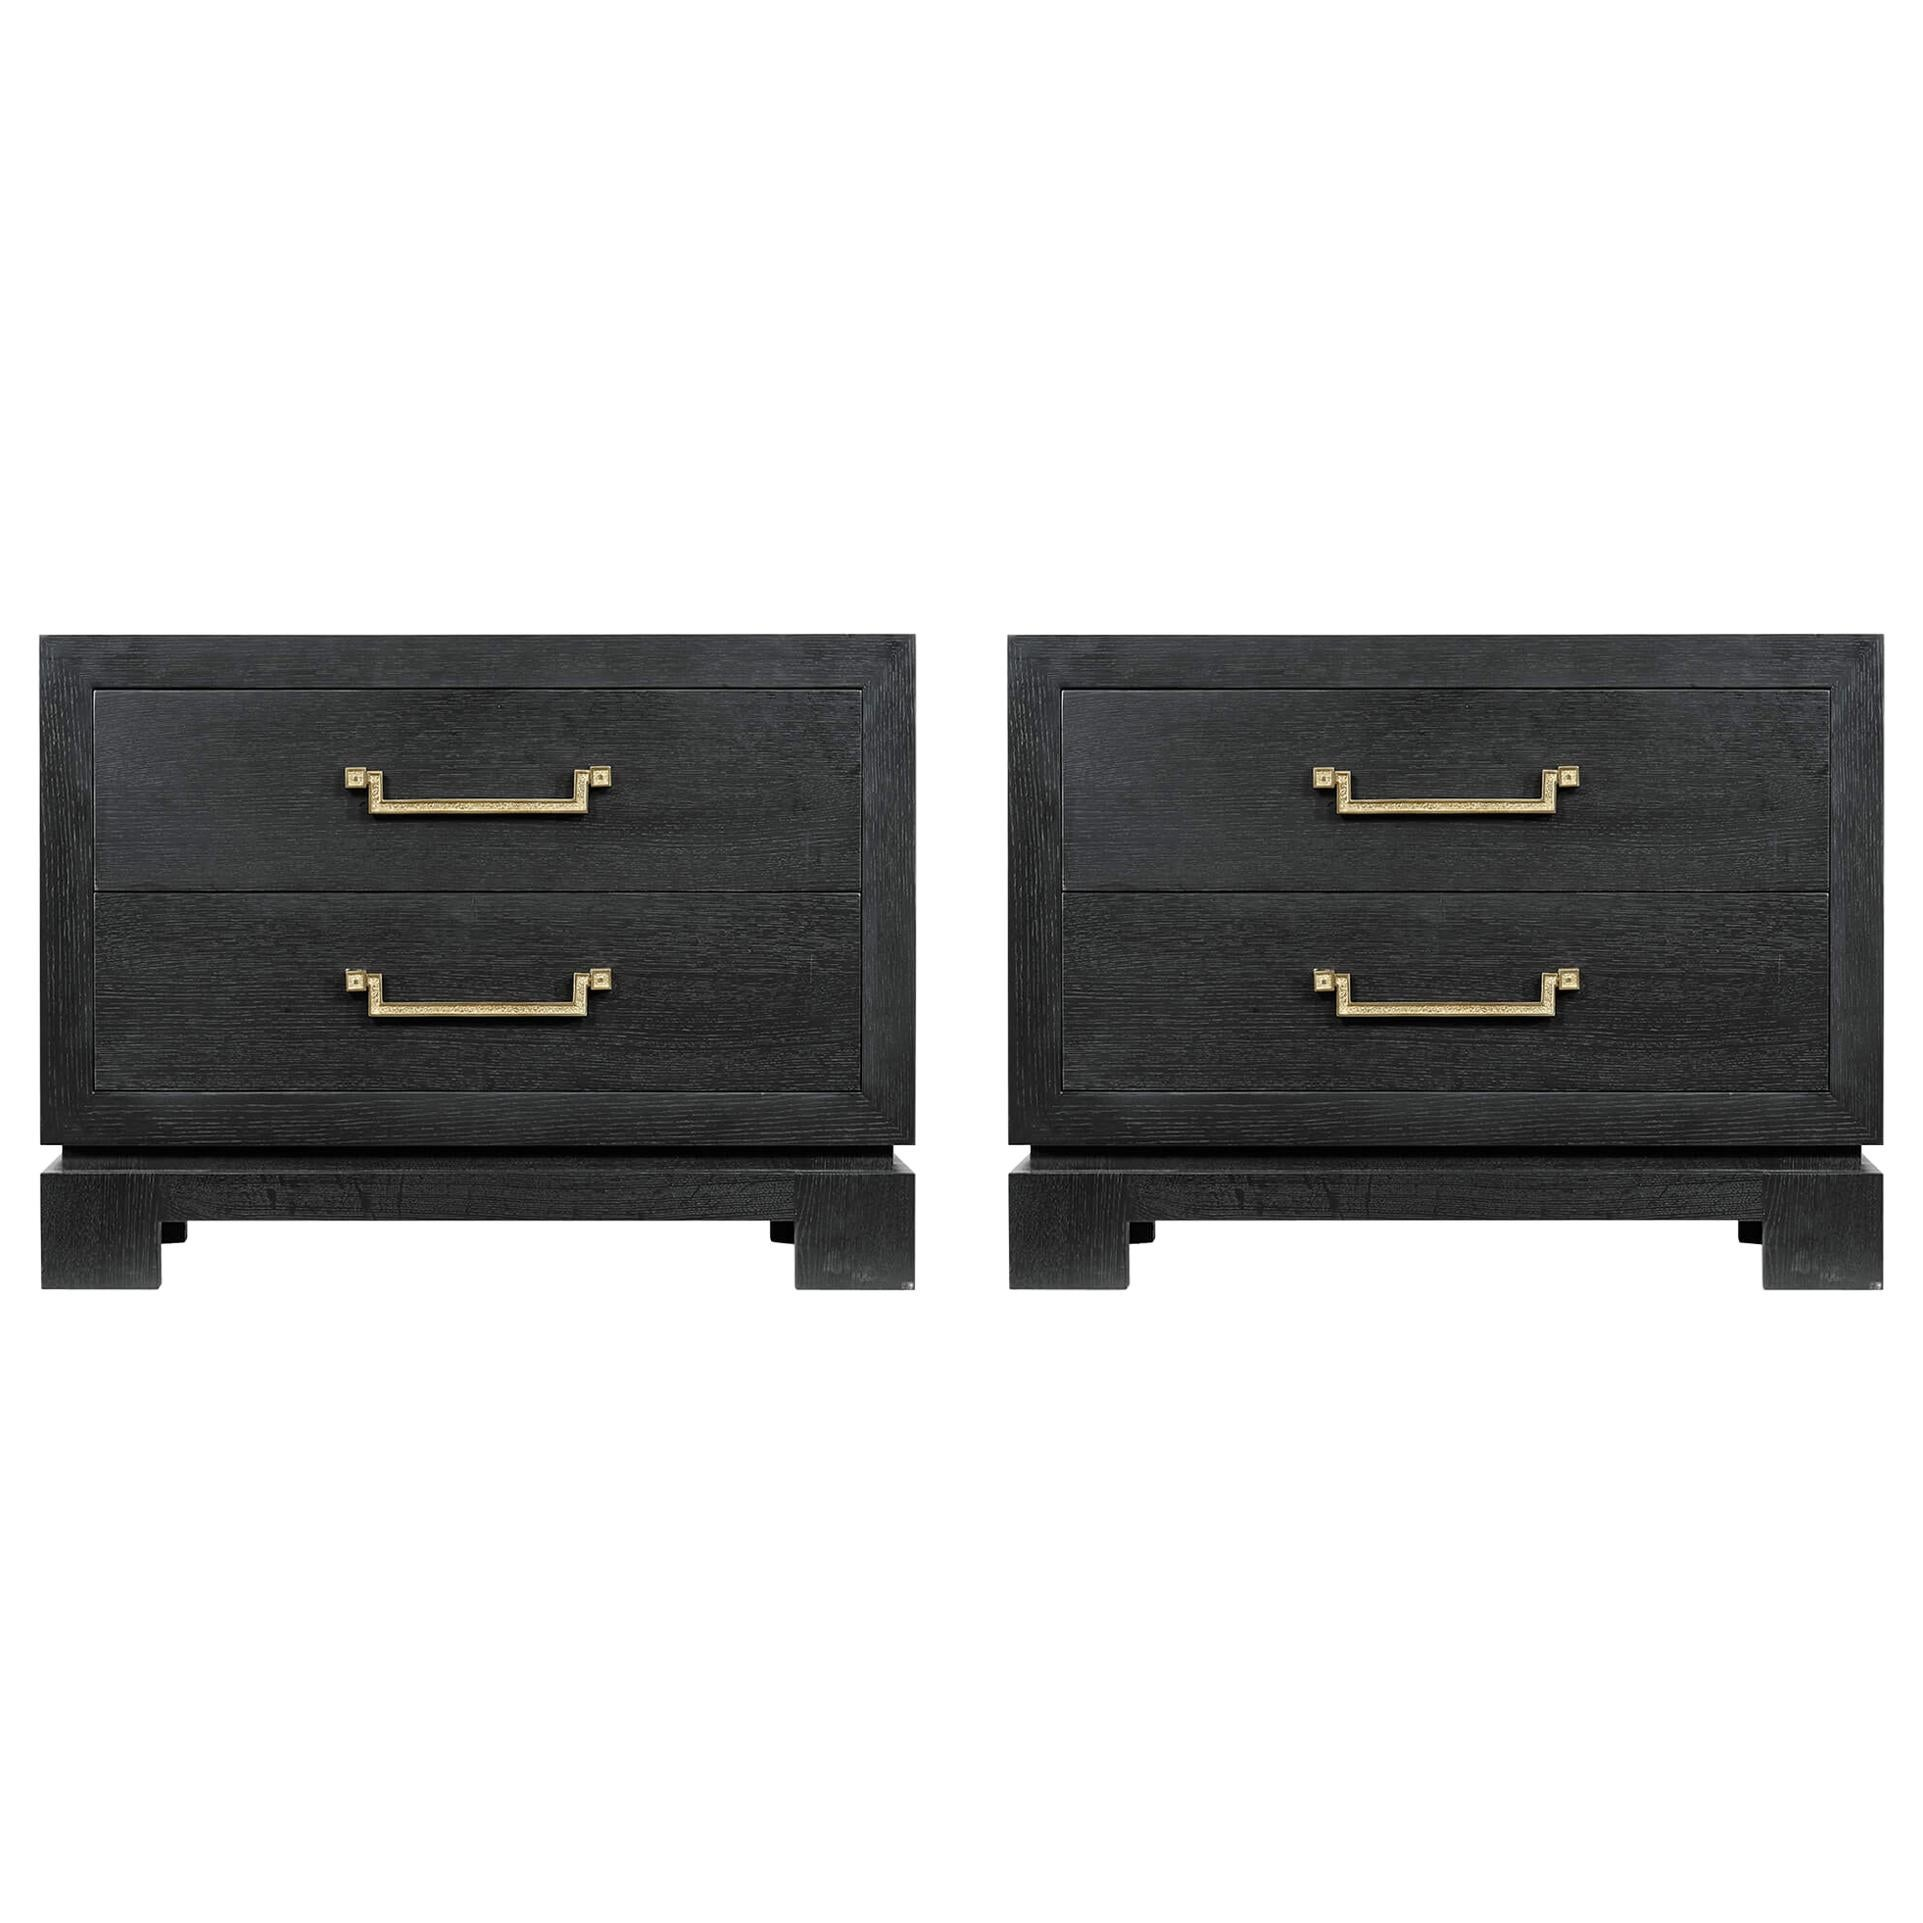 Pair of Midcentury Nightstands